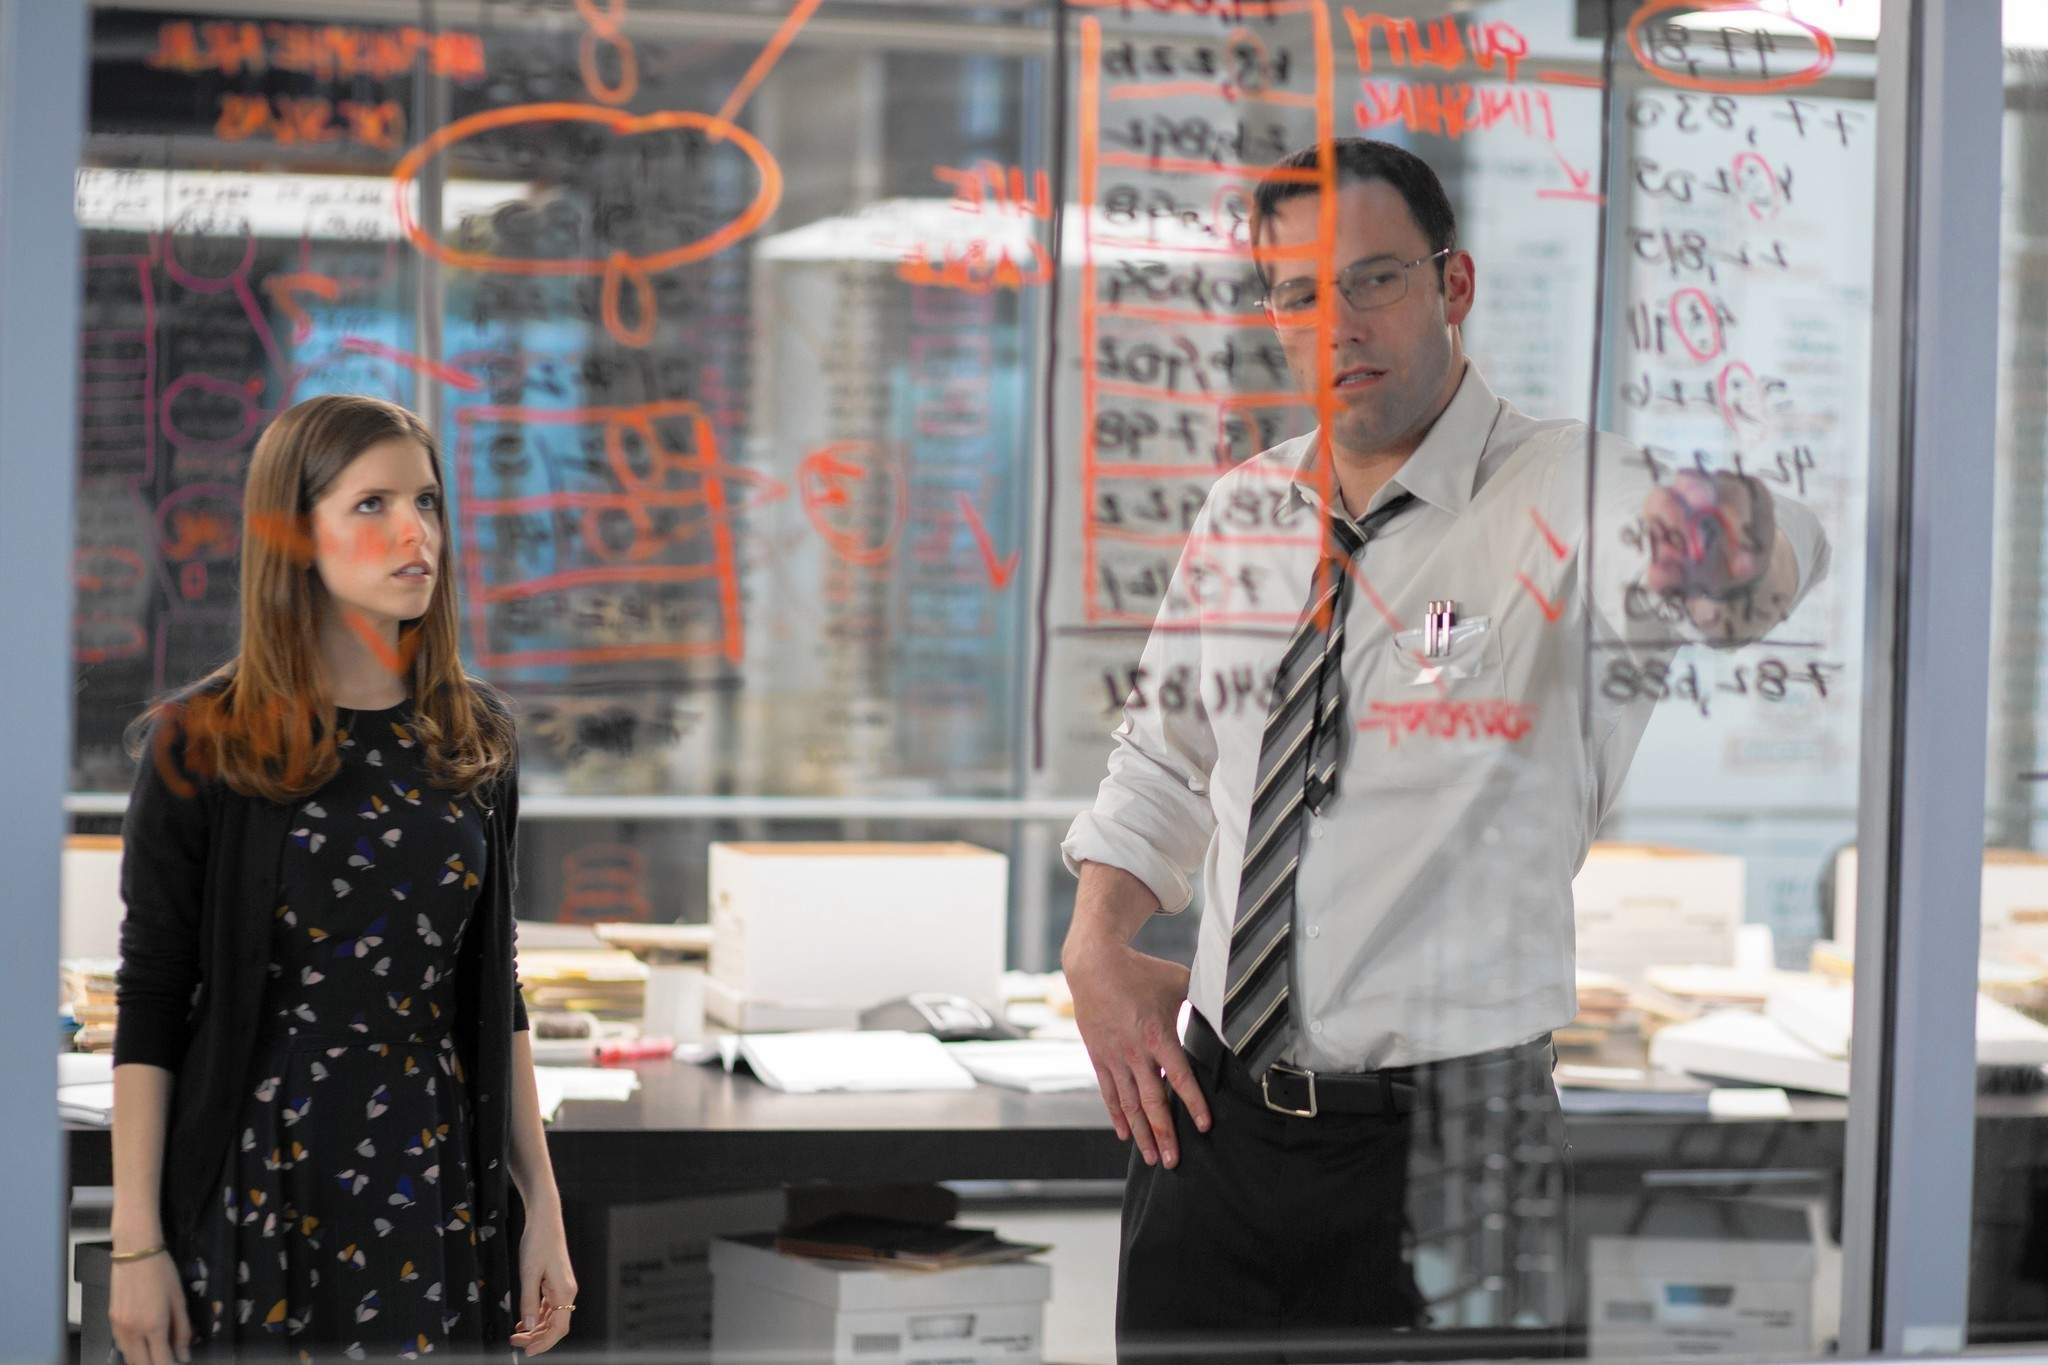 tl-the-accountant-a-thrilling-film-with-an-excellent-affleck-20161018.jpg